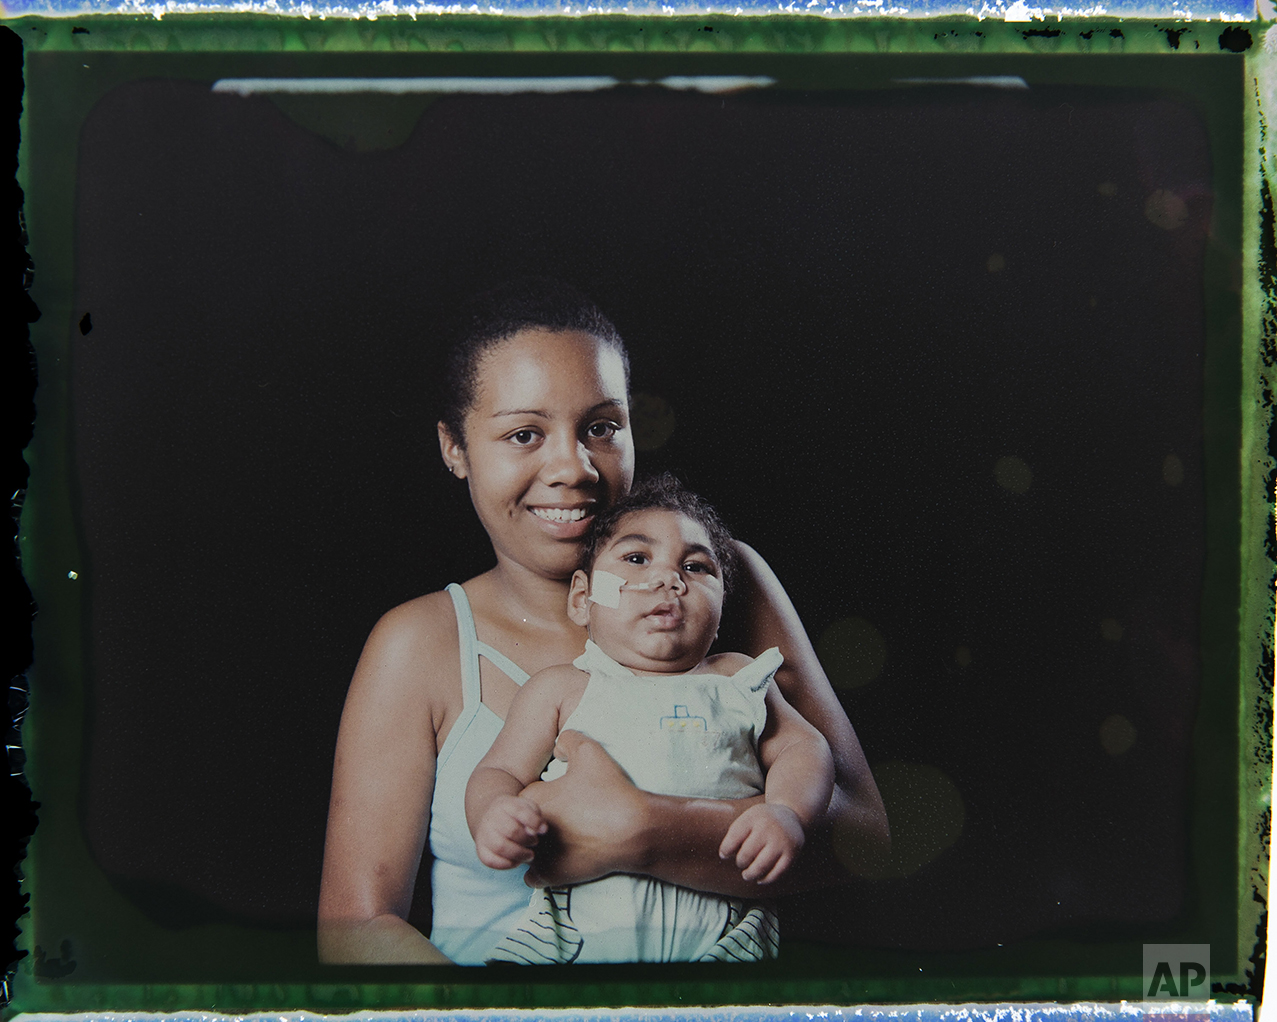 In this Sept. 29, 2016 photo made from a negative recovered from instant film, Tatiane do Nascimento holds her son Willamis Silva, who was born with microcephaly, one of many serious medical problems that can be caused by congenital Zika syndrome, as they pose for a photo in Recife, Pernambuco state, Brazil. Willamis was having swallowing problems and not gaining weight so a feeding tube was introduced, which in less than a month he pulled out a couple of times. Barbosa, who has two other children, says she used to take Williamis daily to the hospital or physical therapy, but now they are going two or three times a week. (AP Photo/Felipe Dana)